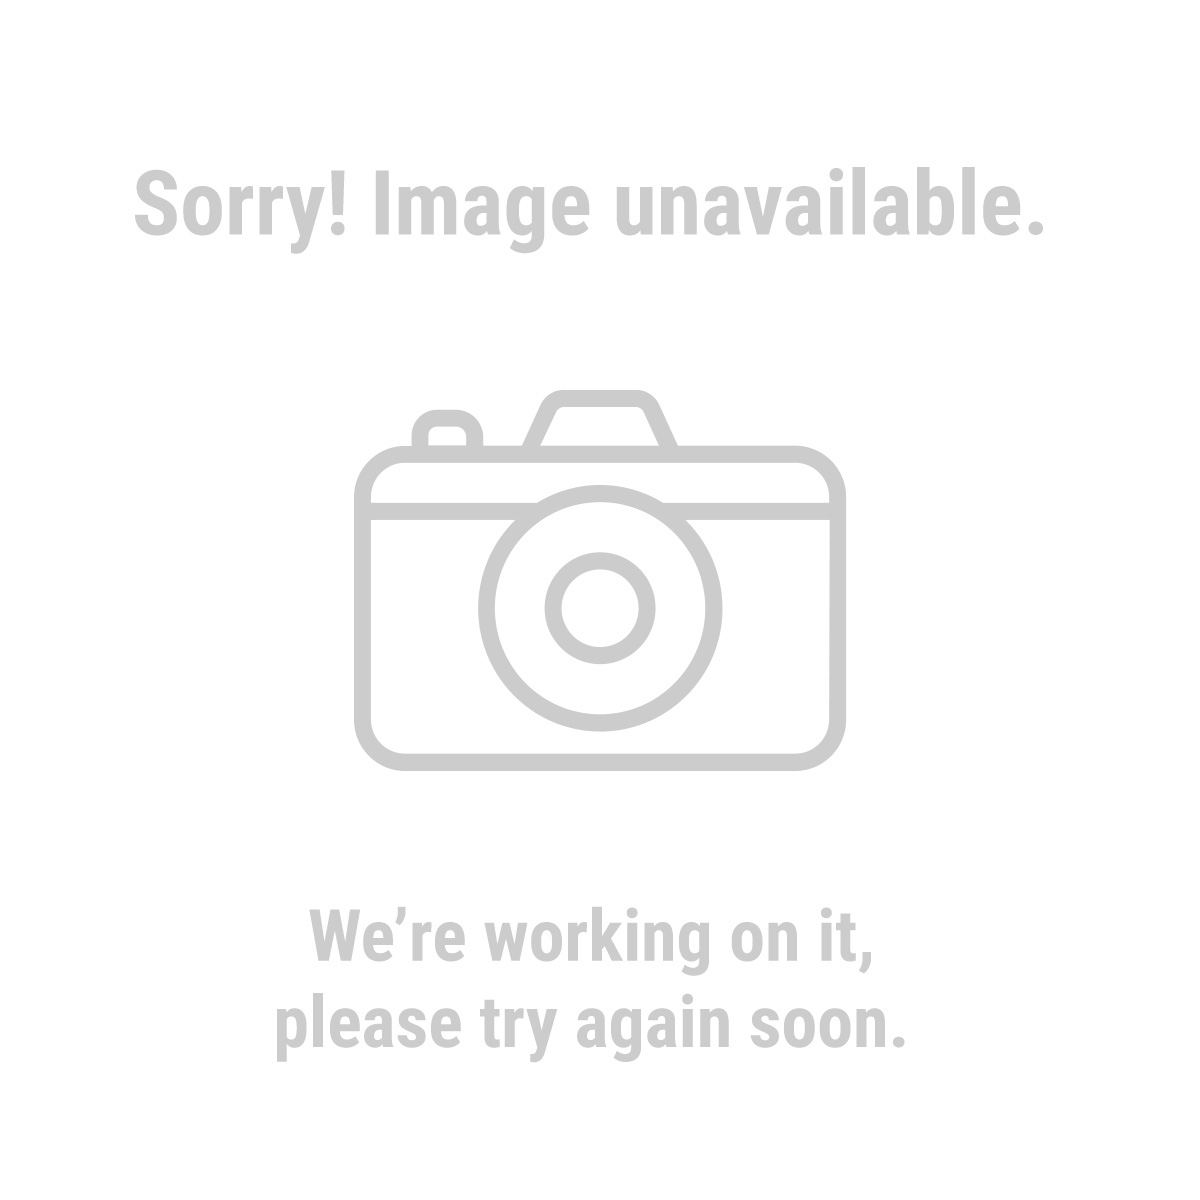 Warrior® 45433 4 in. 40 Grit Masonry Cut-Off Wheel 10 Pc